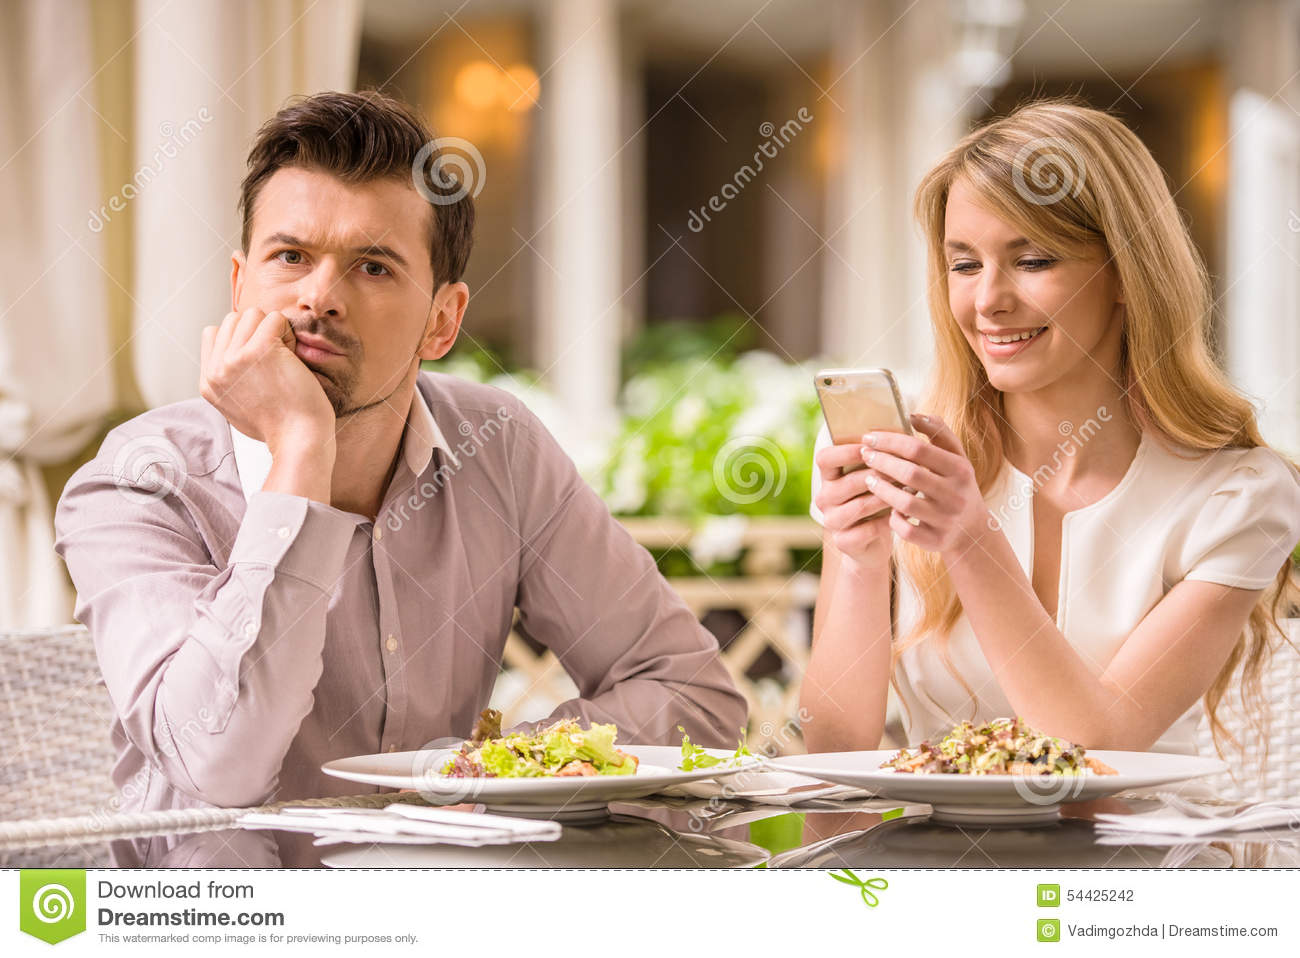 eater dating girl Table for two: picky eater dating by bethany imondi as a young girl, she always ordered a grilled sandwich when dining out with her mom and dad in restaurants.